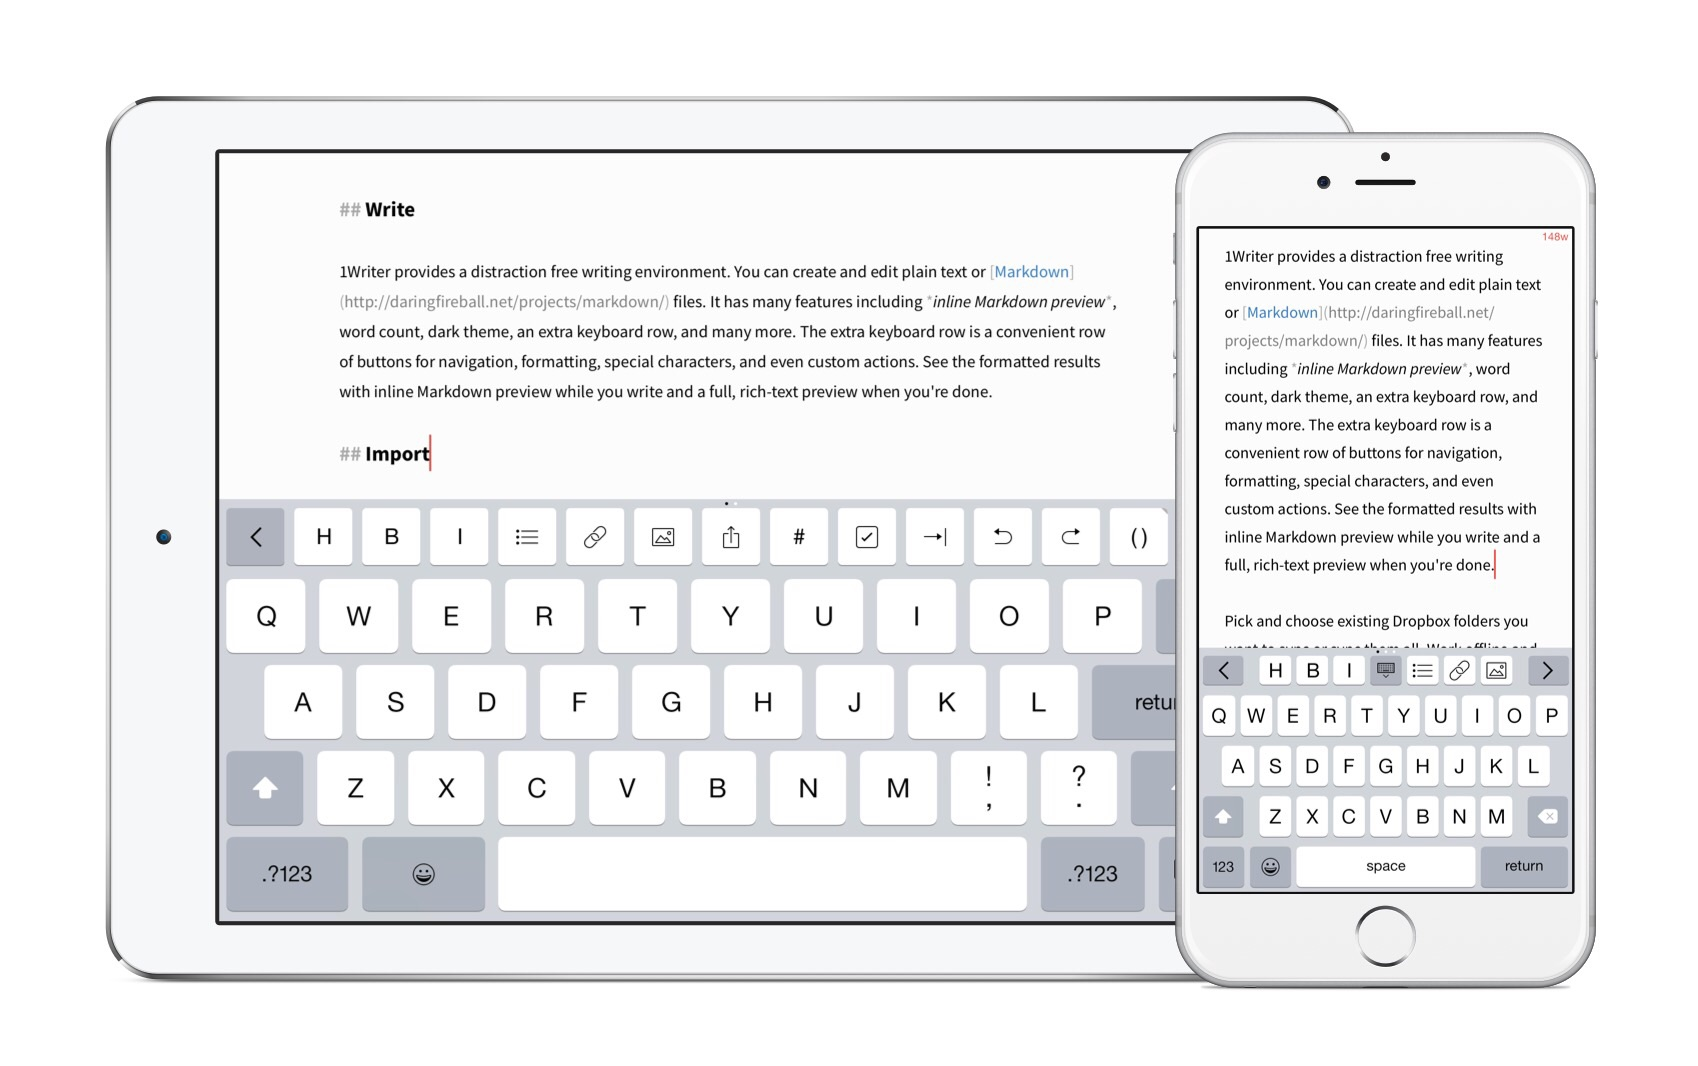 Version 2.0 of 1Writer features iOS 8 optimizations, iPhone 6 support and more